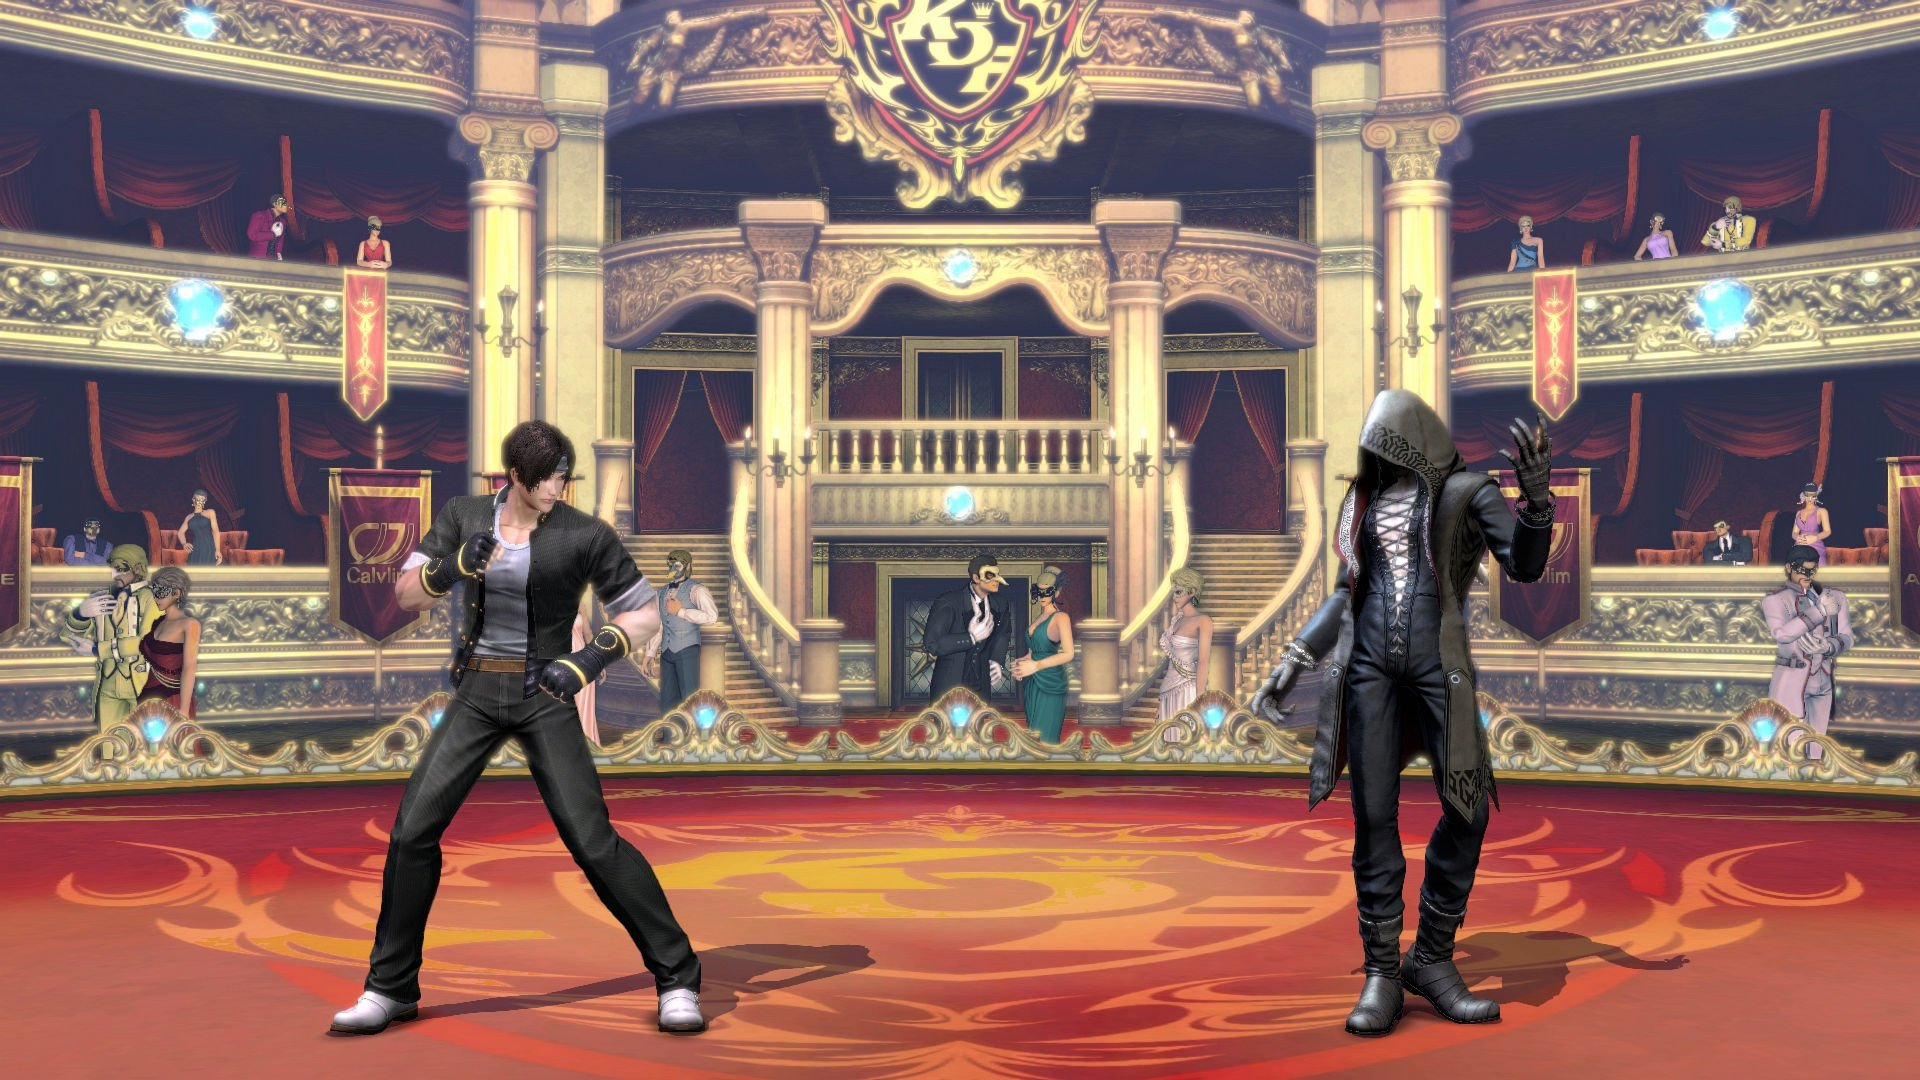 king_of_fighters_xiv-3371163.jpg